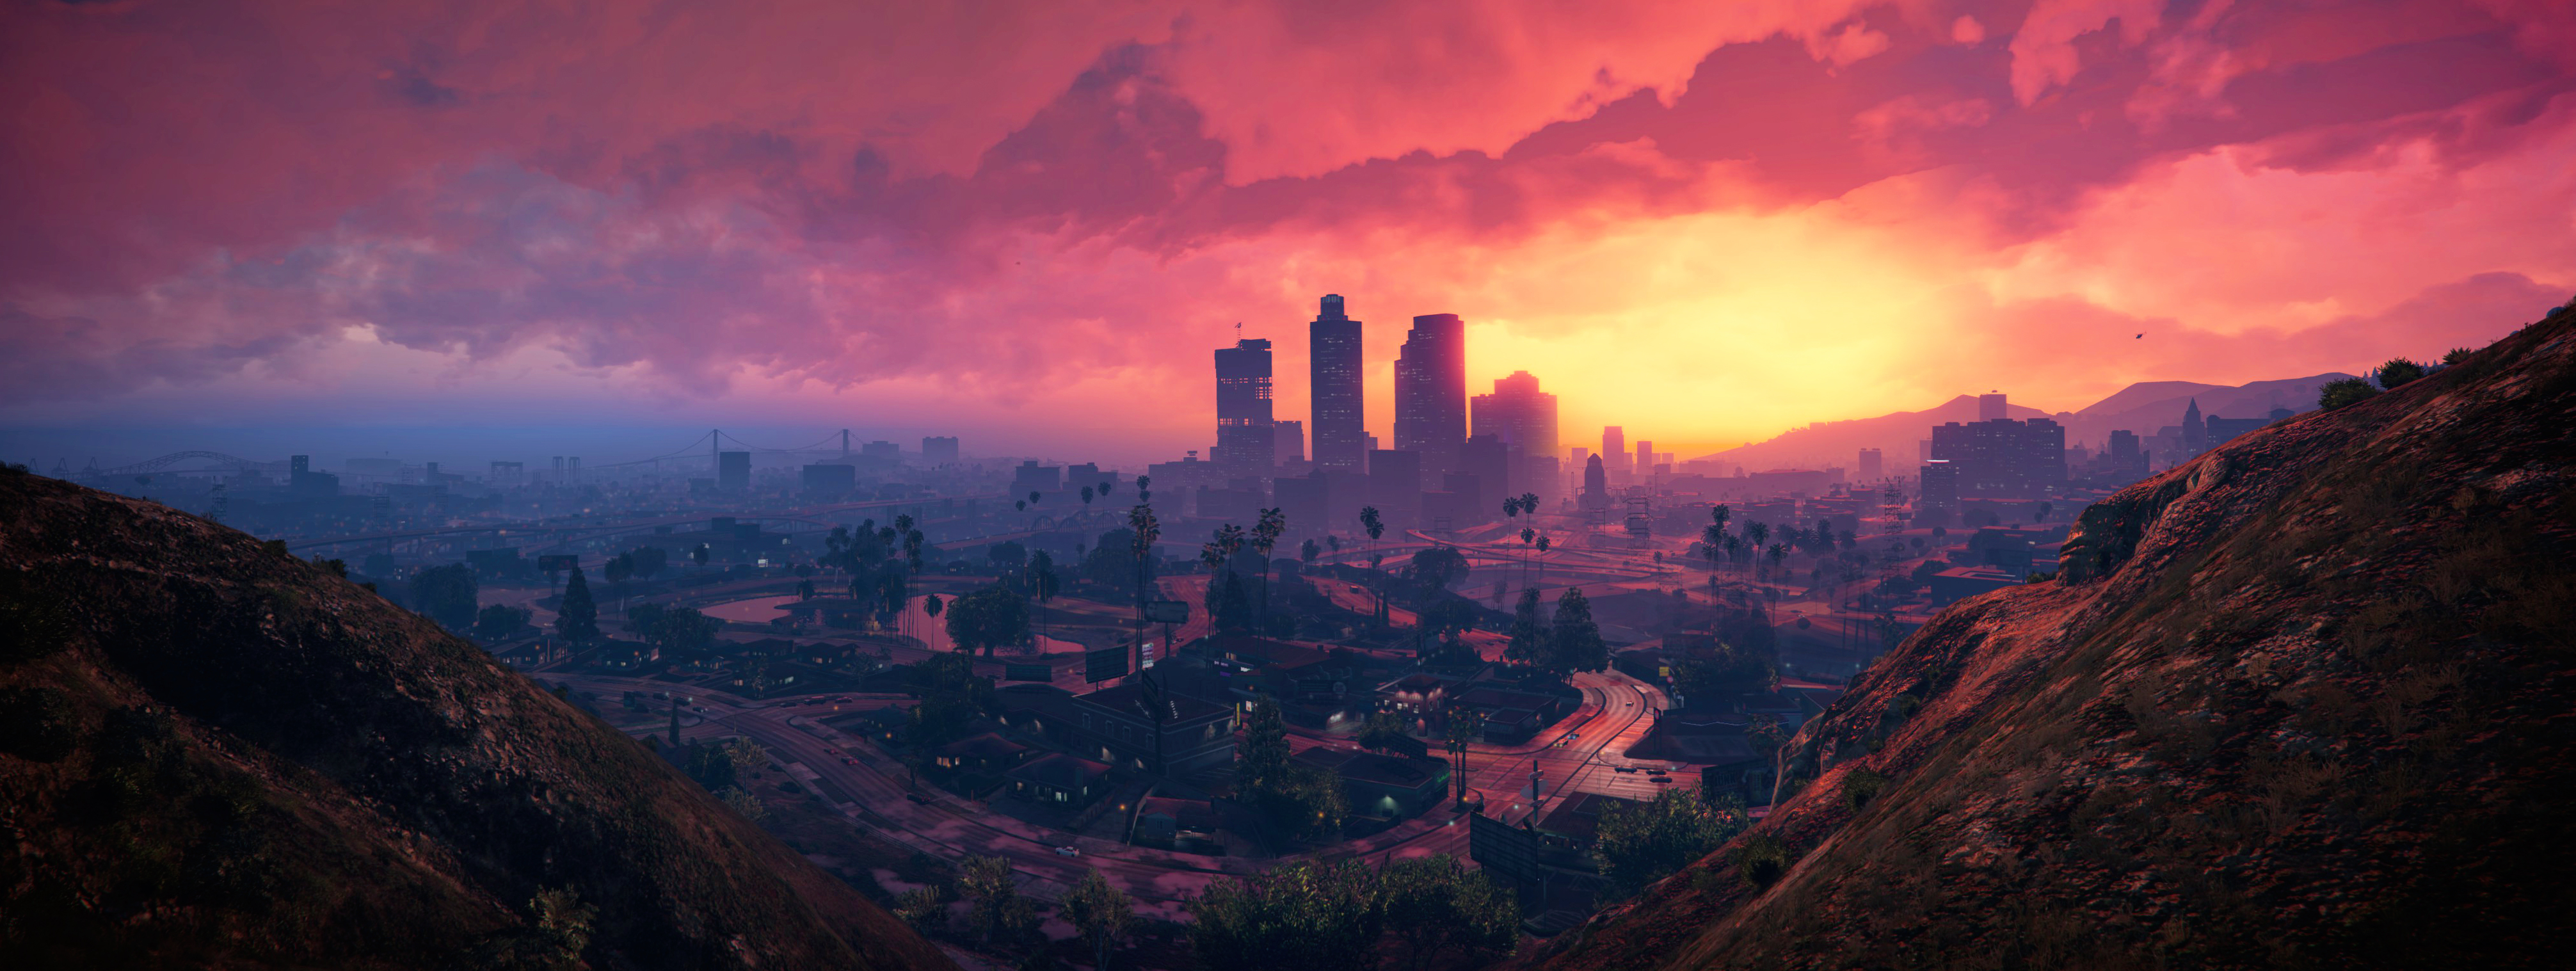 2560x1080 4k Grand Theft Auto V Scenery 2560x1080 Resolution Image Hd Nature 4k Wallpapers Images Photos And Background